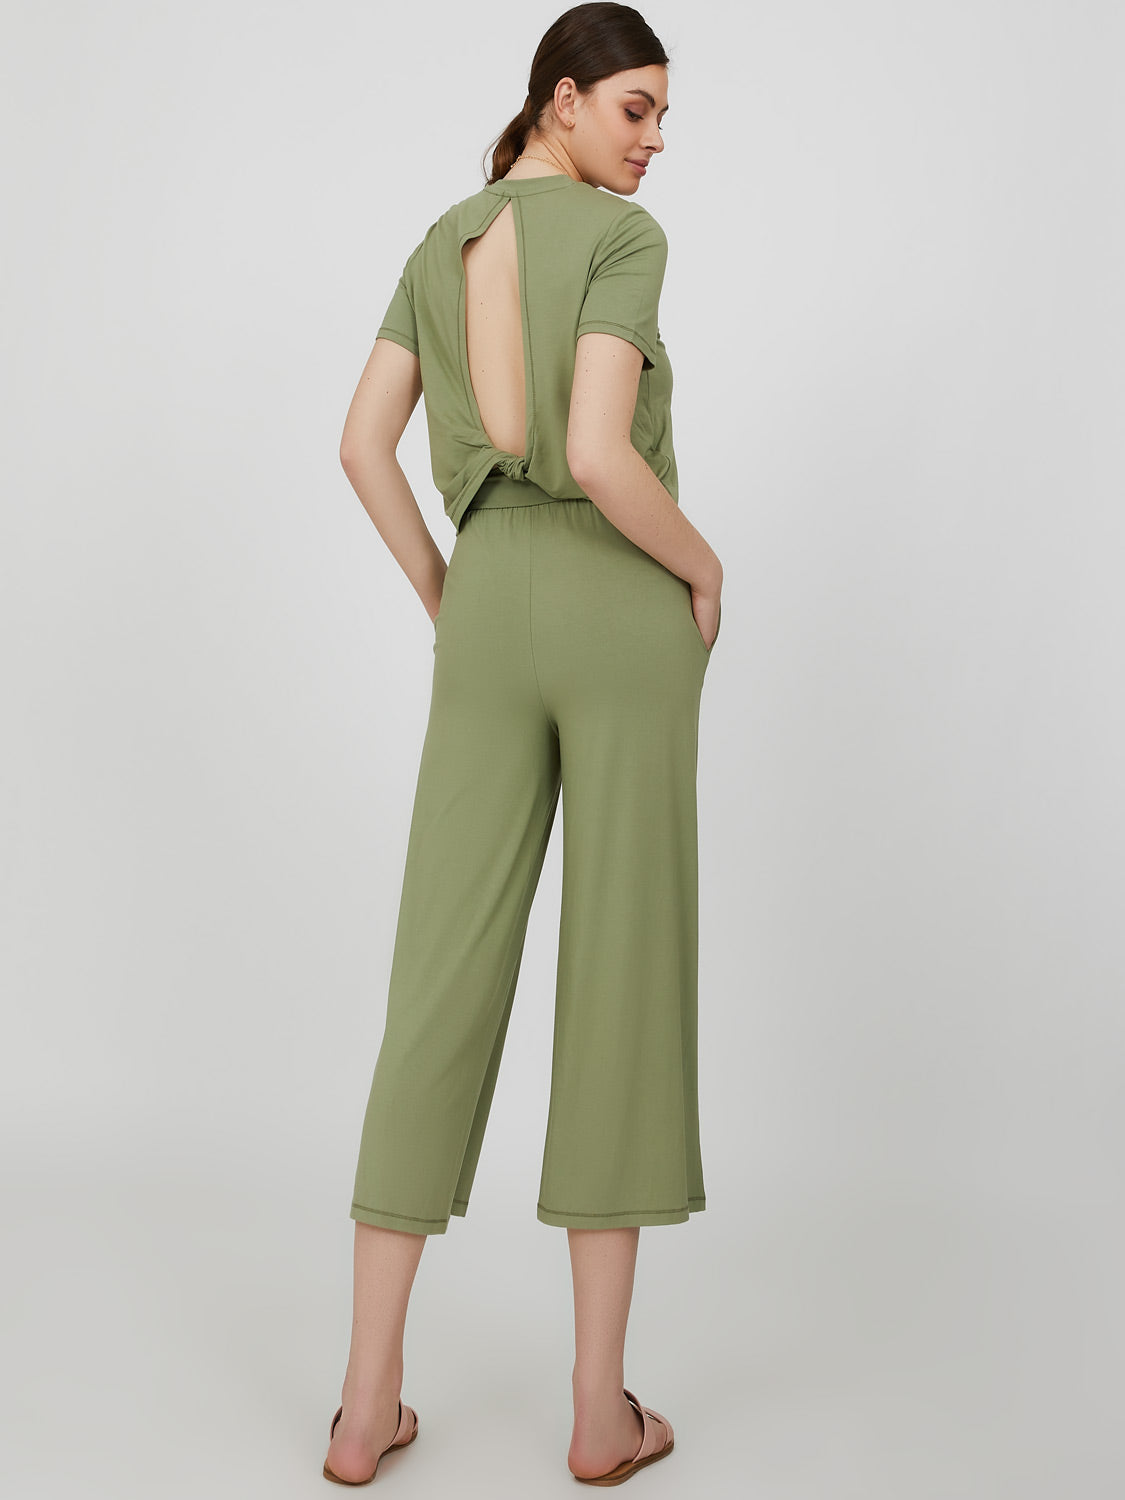 Short Sleeve Open Back Wide Leg Jumpsuit